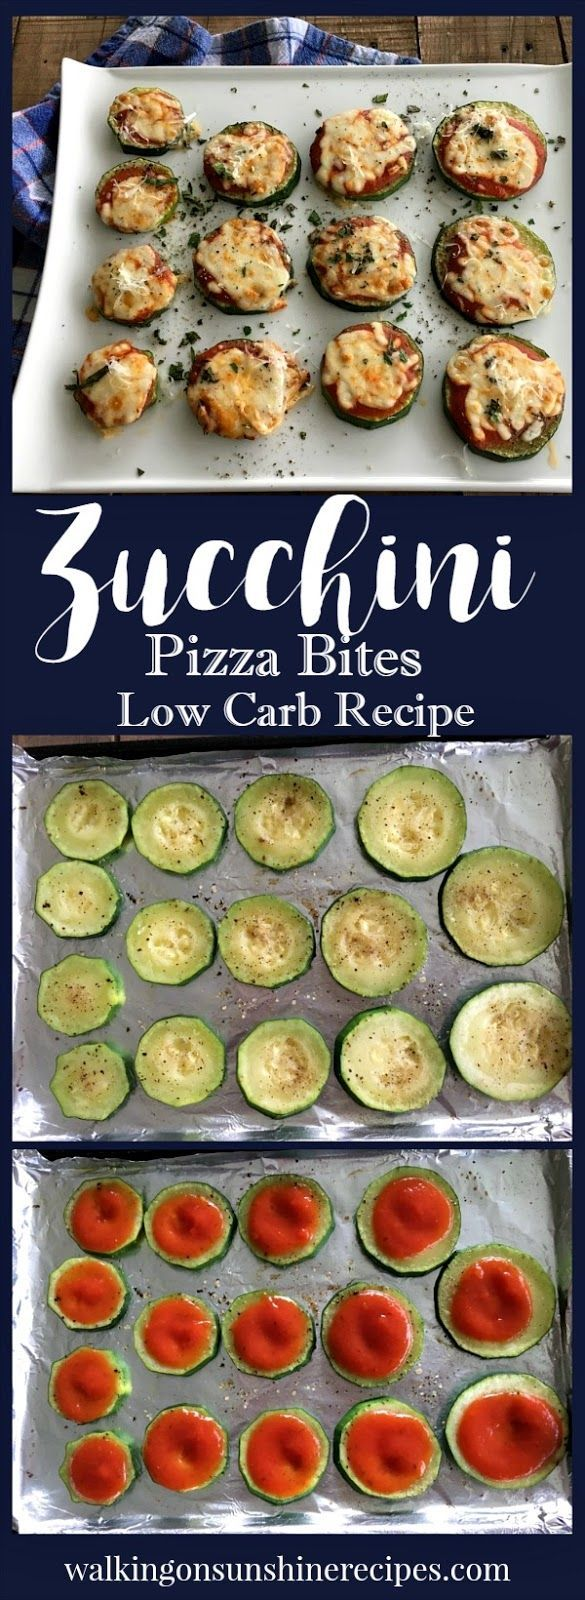 Low Carb Recipe for Zucchini Pizza Bites | Walking on Sunshine